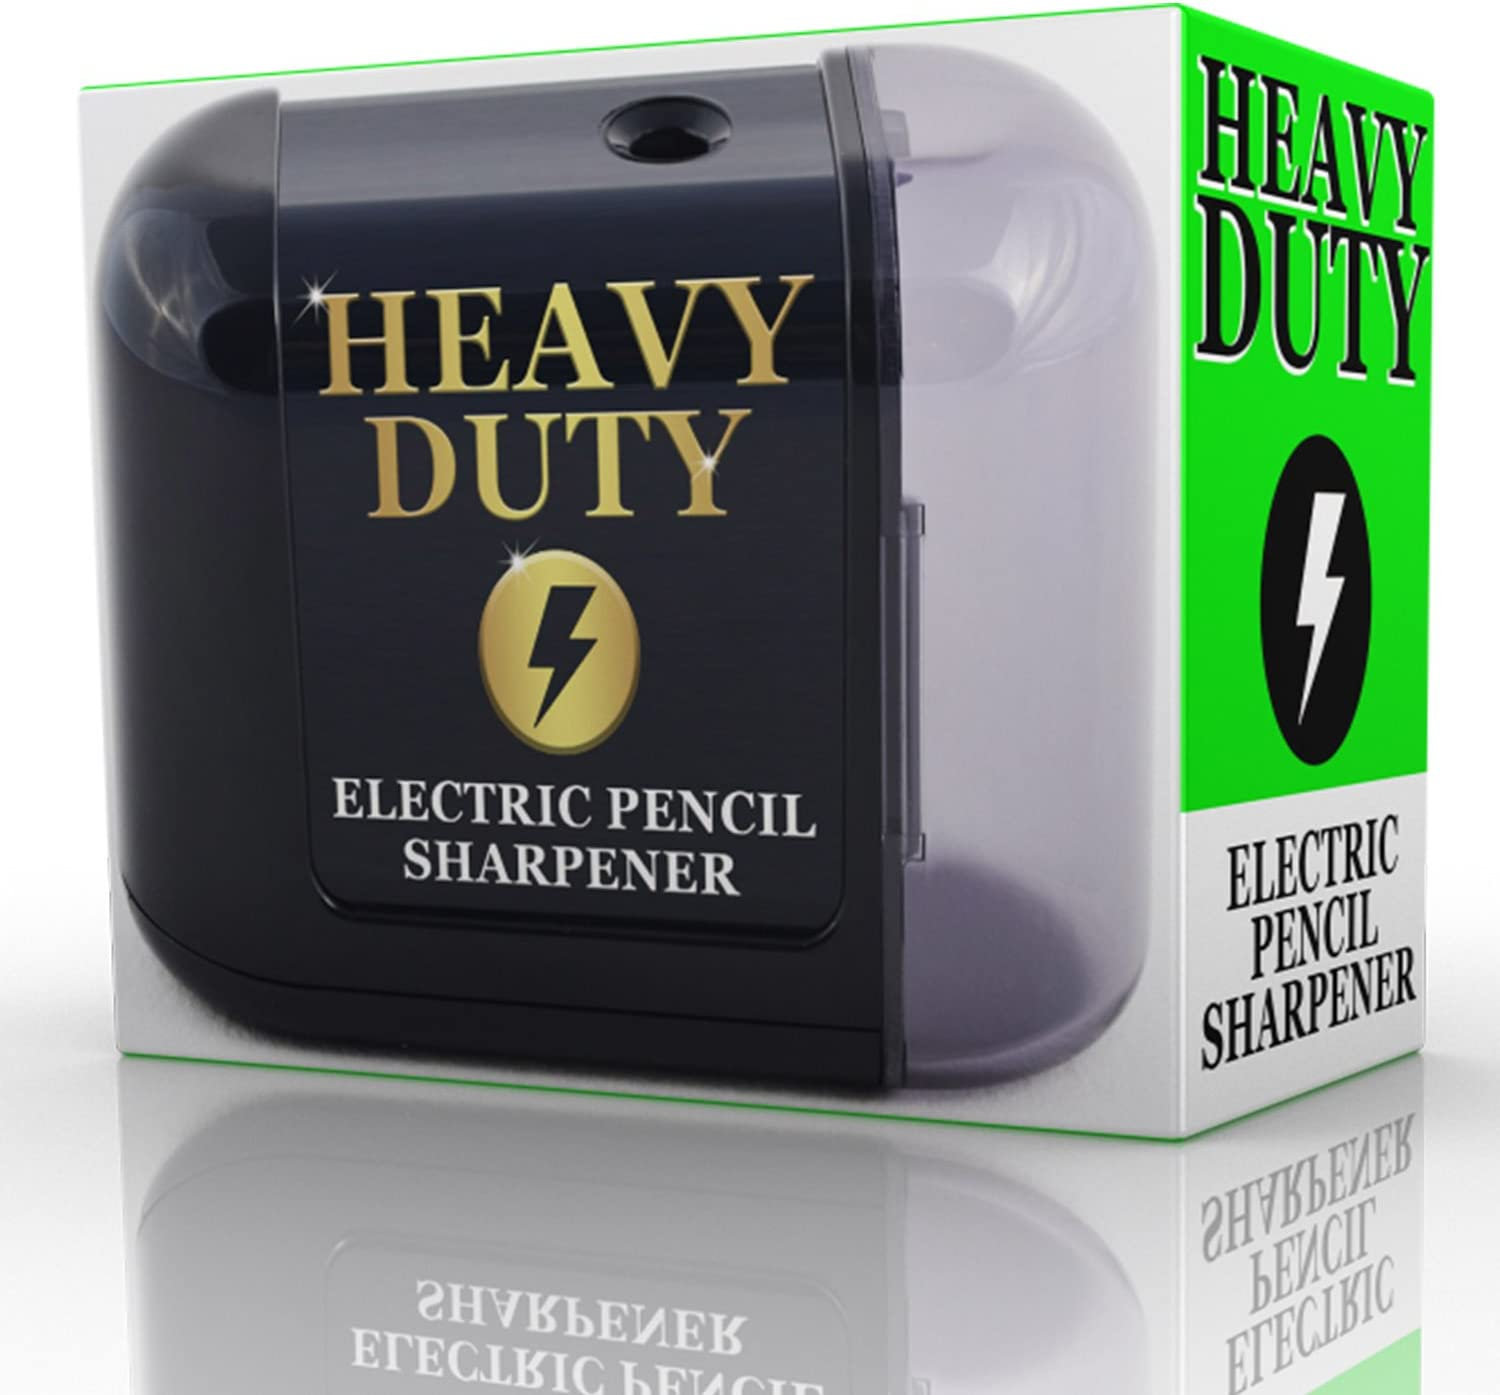 Artist Choice Electric-Pencil-Sharpener Battery Powered Heavy Duty Helical Blade Pencil Sharpener